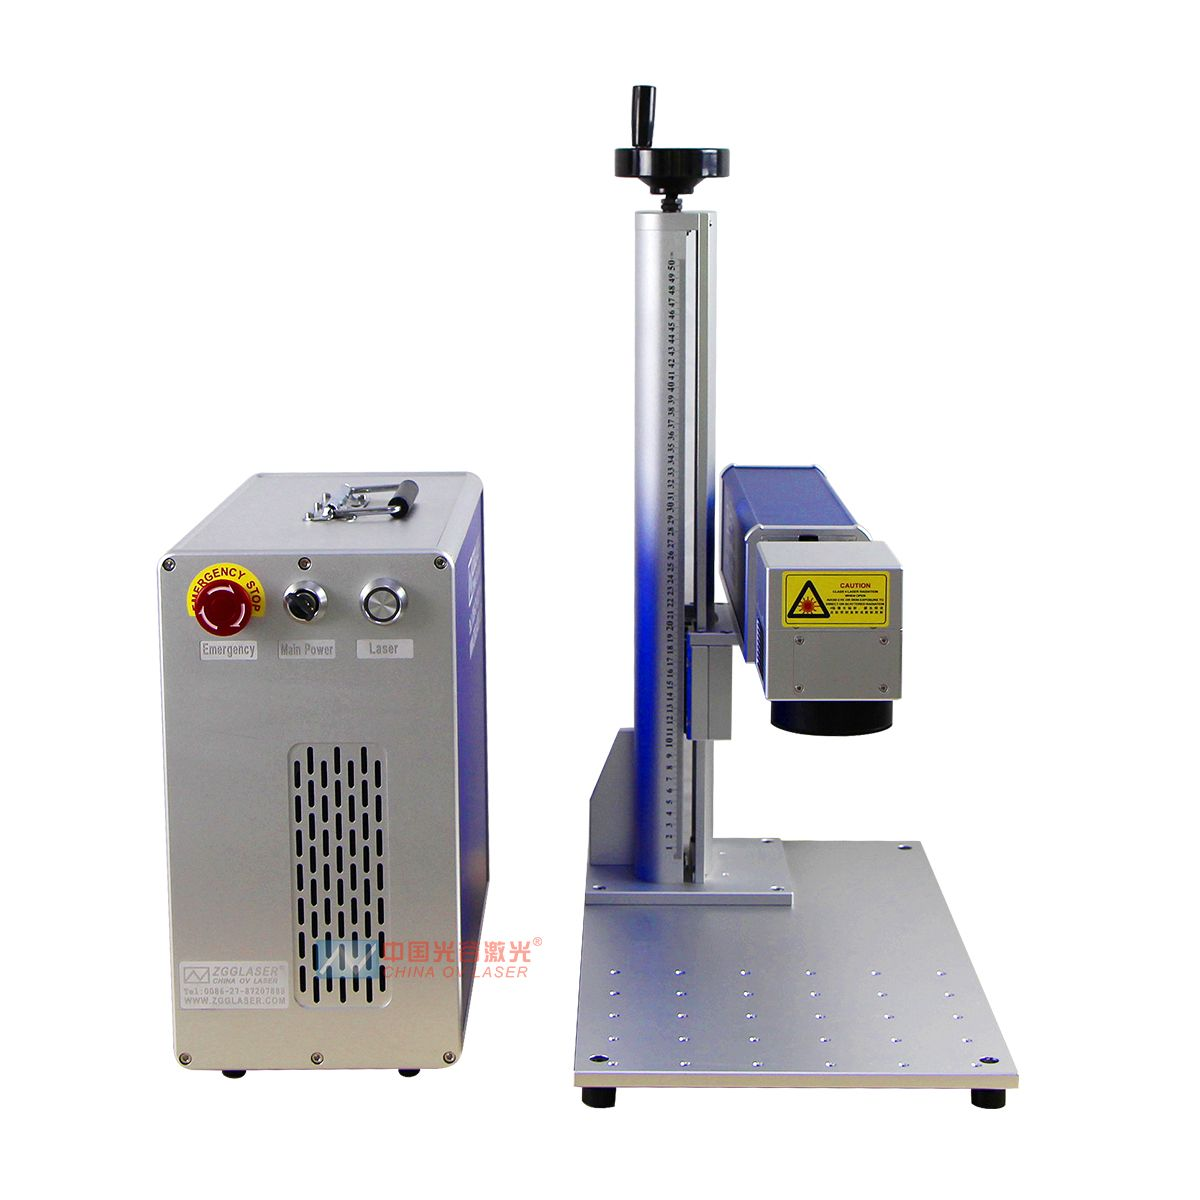 Cnc 10w 20w 30w 50w Fiber Laser Marking Machine For Metal Steel Aluminum Brass Copper View 10w 20w 30w 50w Fiber Laser Marking Machine Ov Laser Product Detail Laser Marking Brass